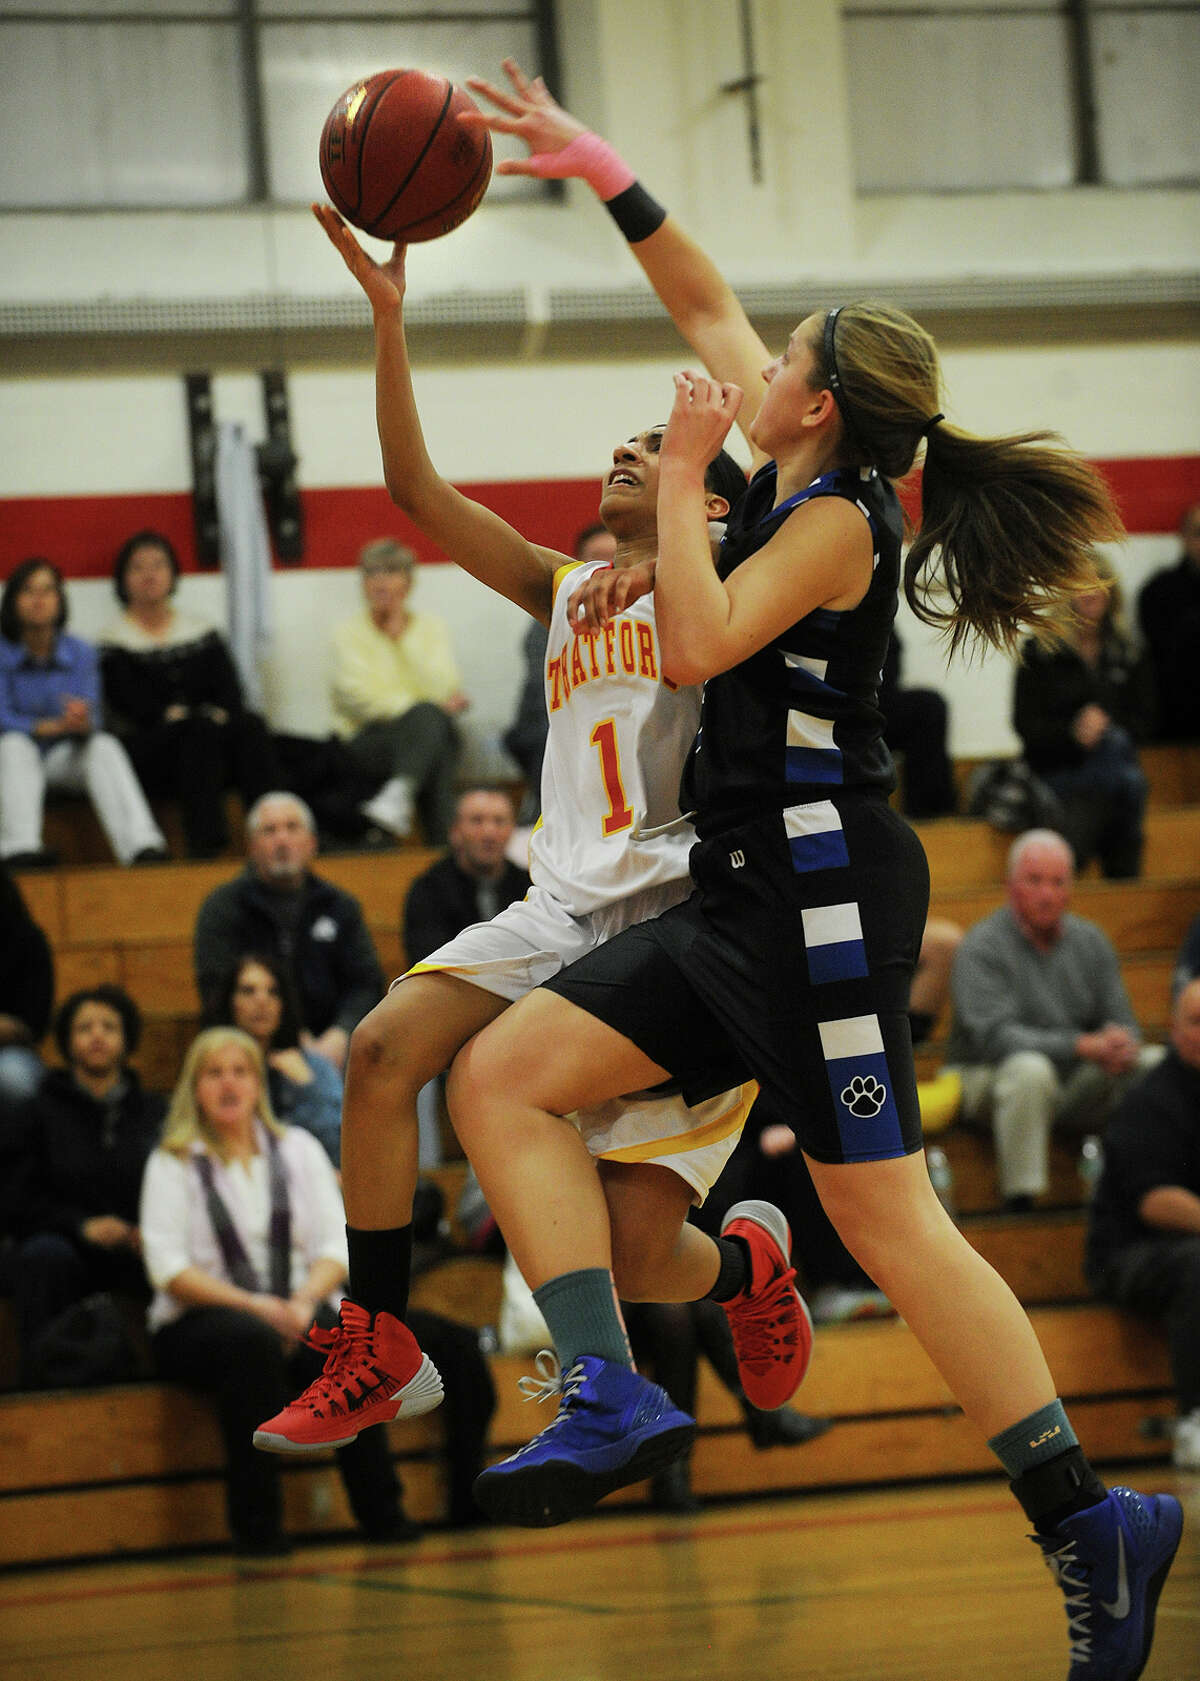 Bunnell's Jill Pastor looks for the block as Stratford's Destani Brantley drives to the basket during their girls basketball matchup at Stratford High School in Stratford, Conn on Monday, January 13, 2014.